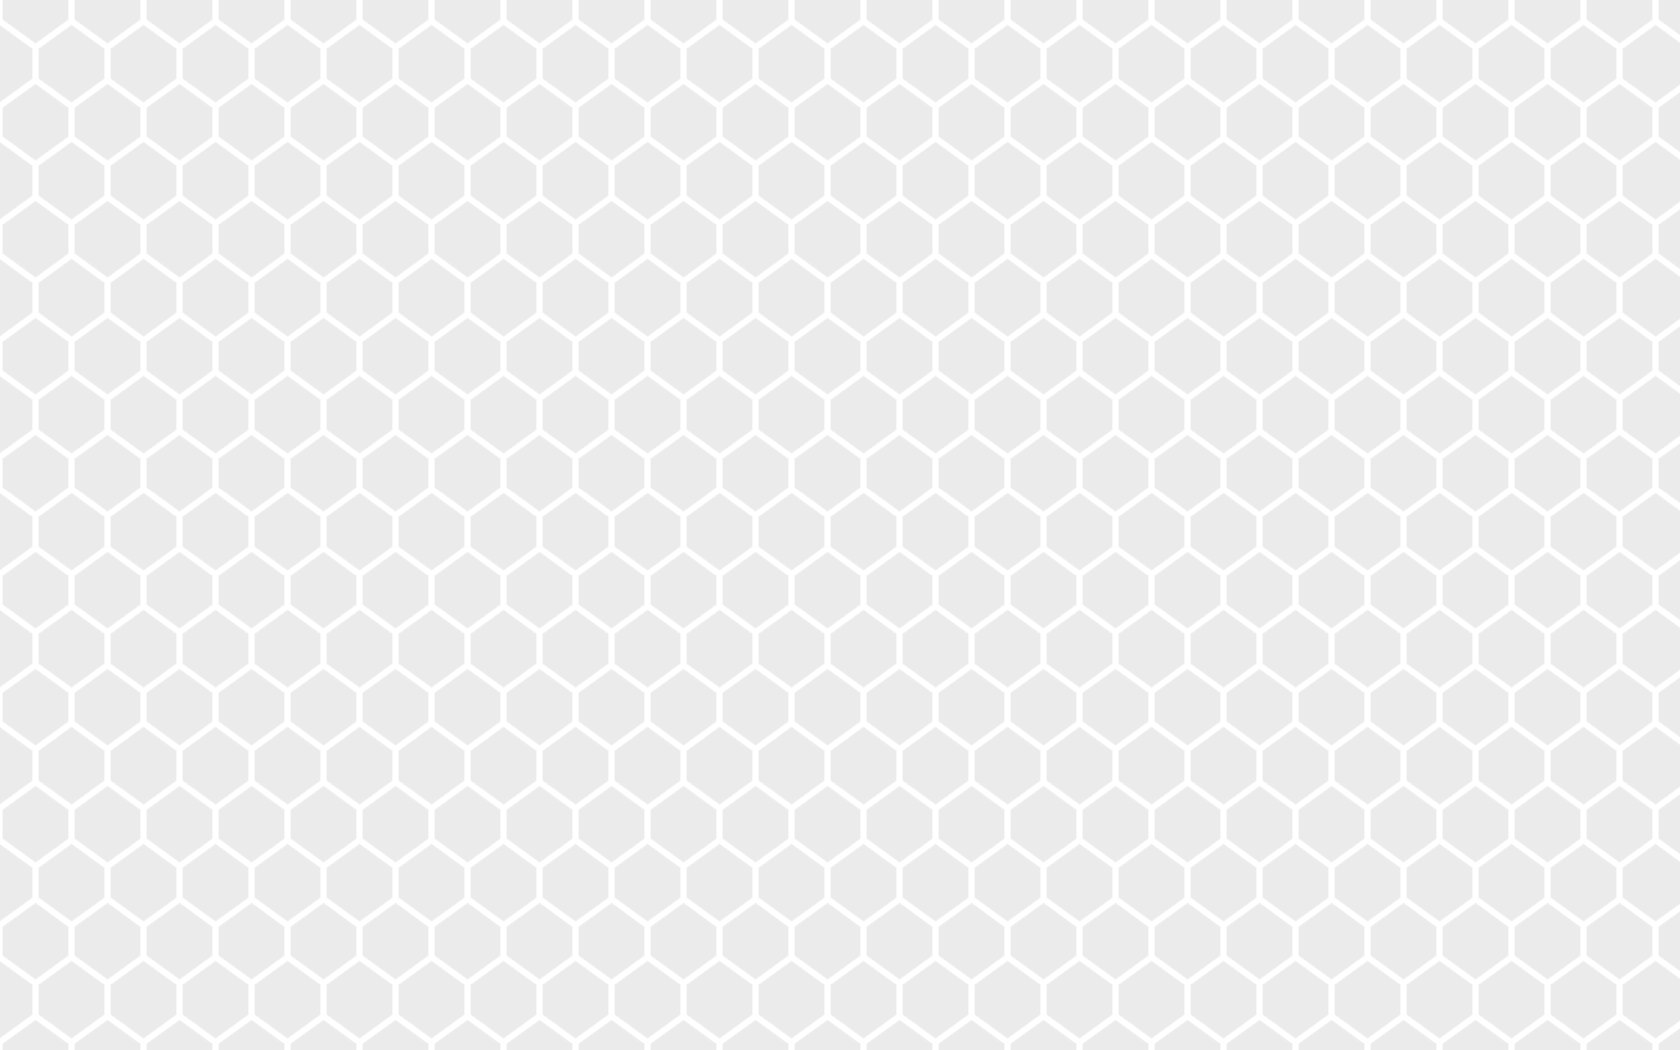 Background pattern1 copy business trendsbusiness trends for Object pool design pattern